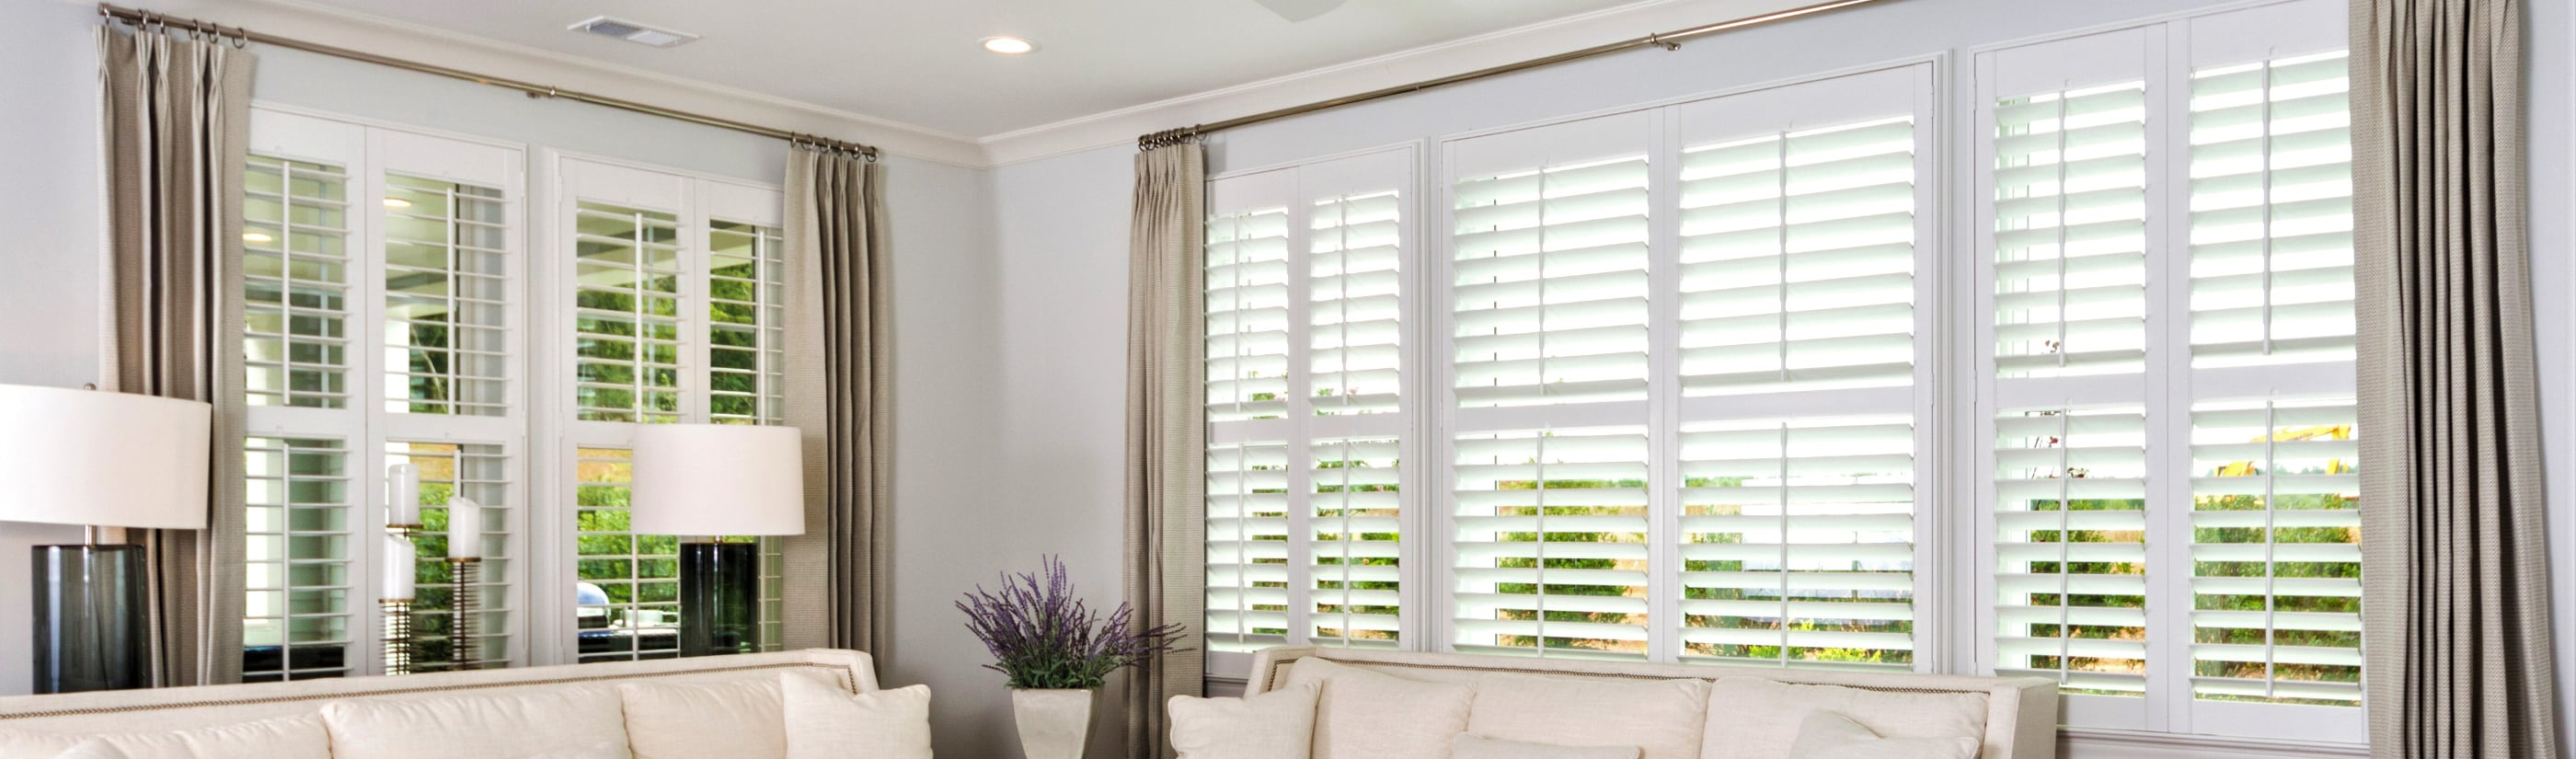 Polywood Shutters Paints In Honolulu